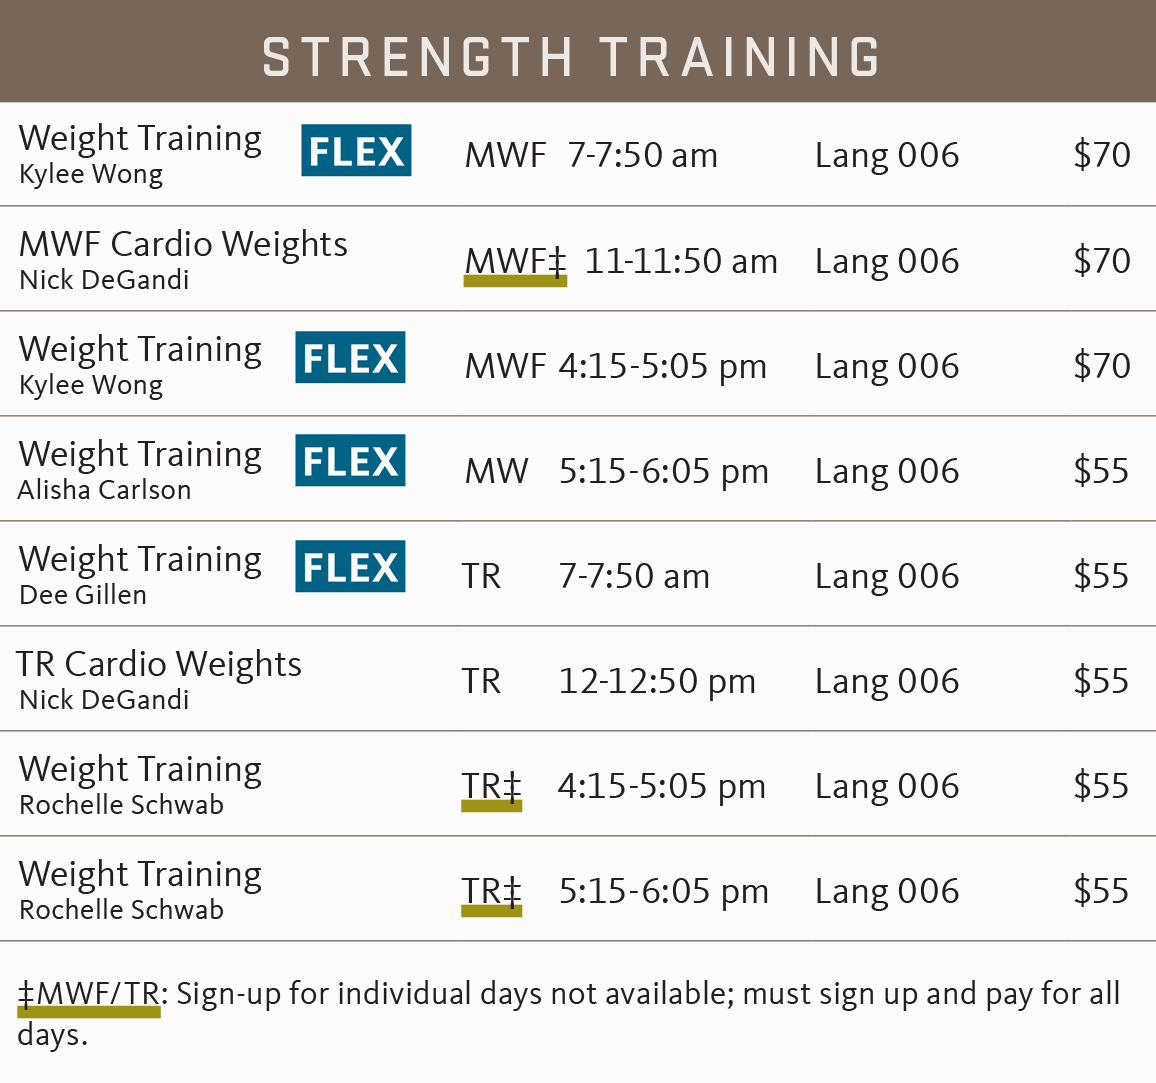 FSF Spring 2018 strength training schedule